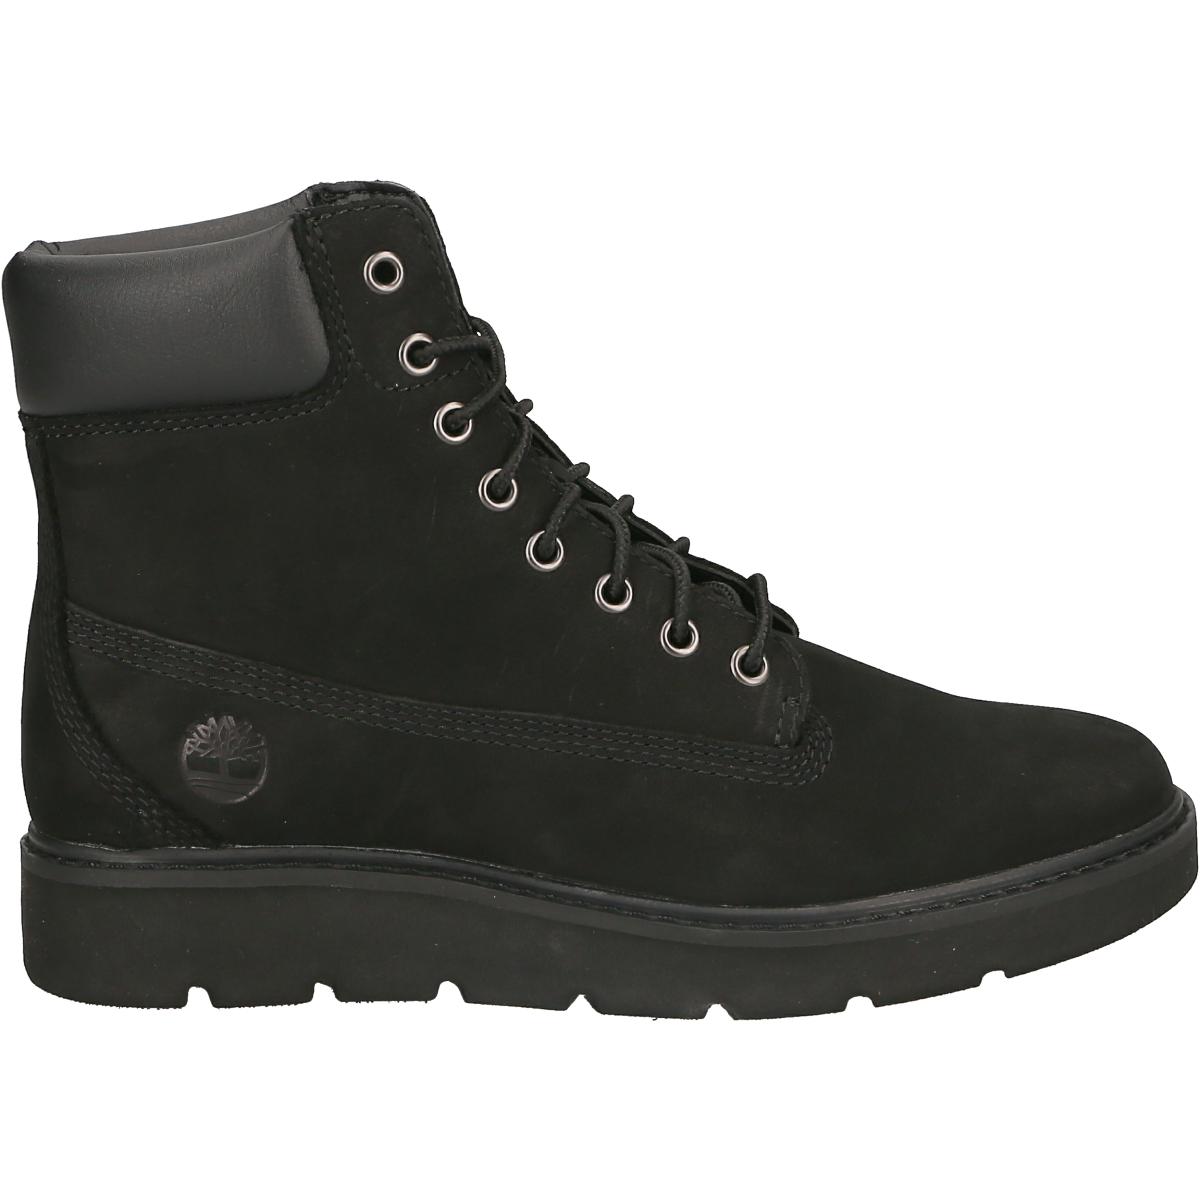 Timberland #A15TM Women's shoes Ankle Boots buy shoes at our